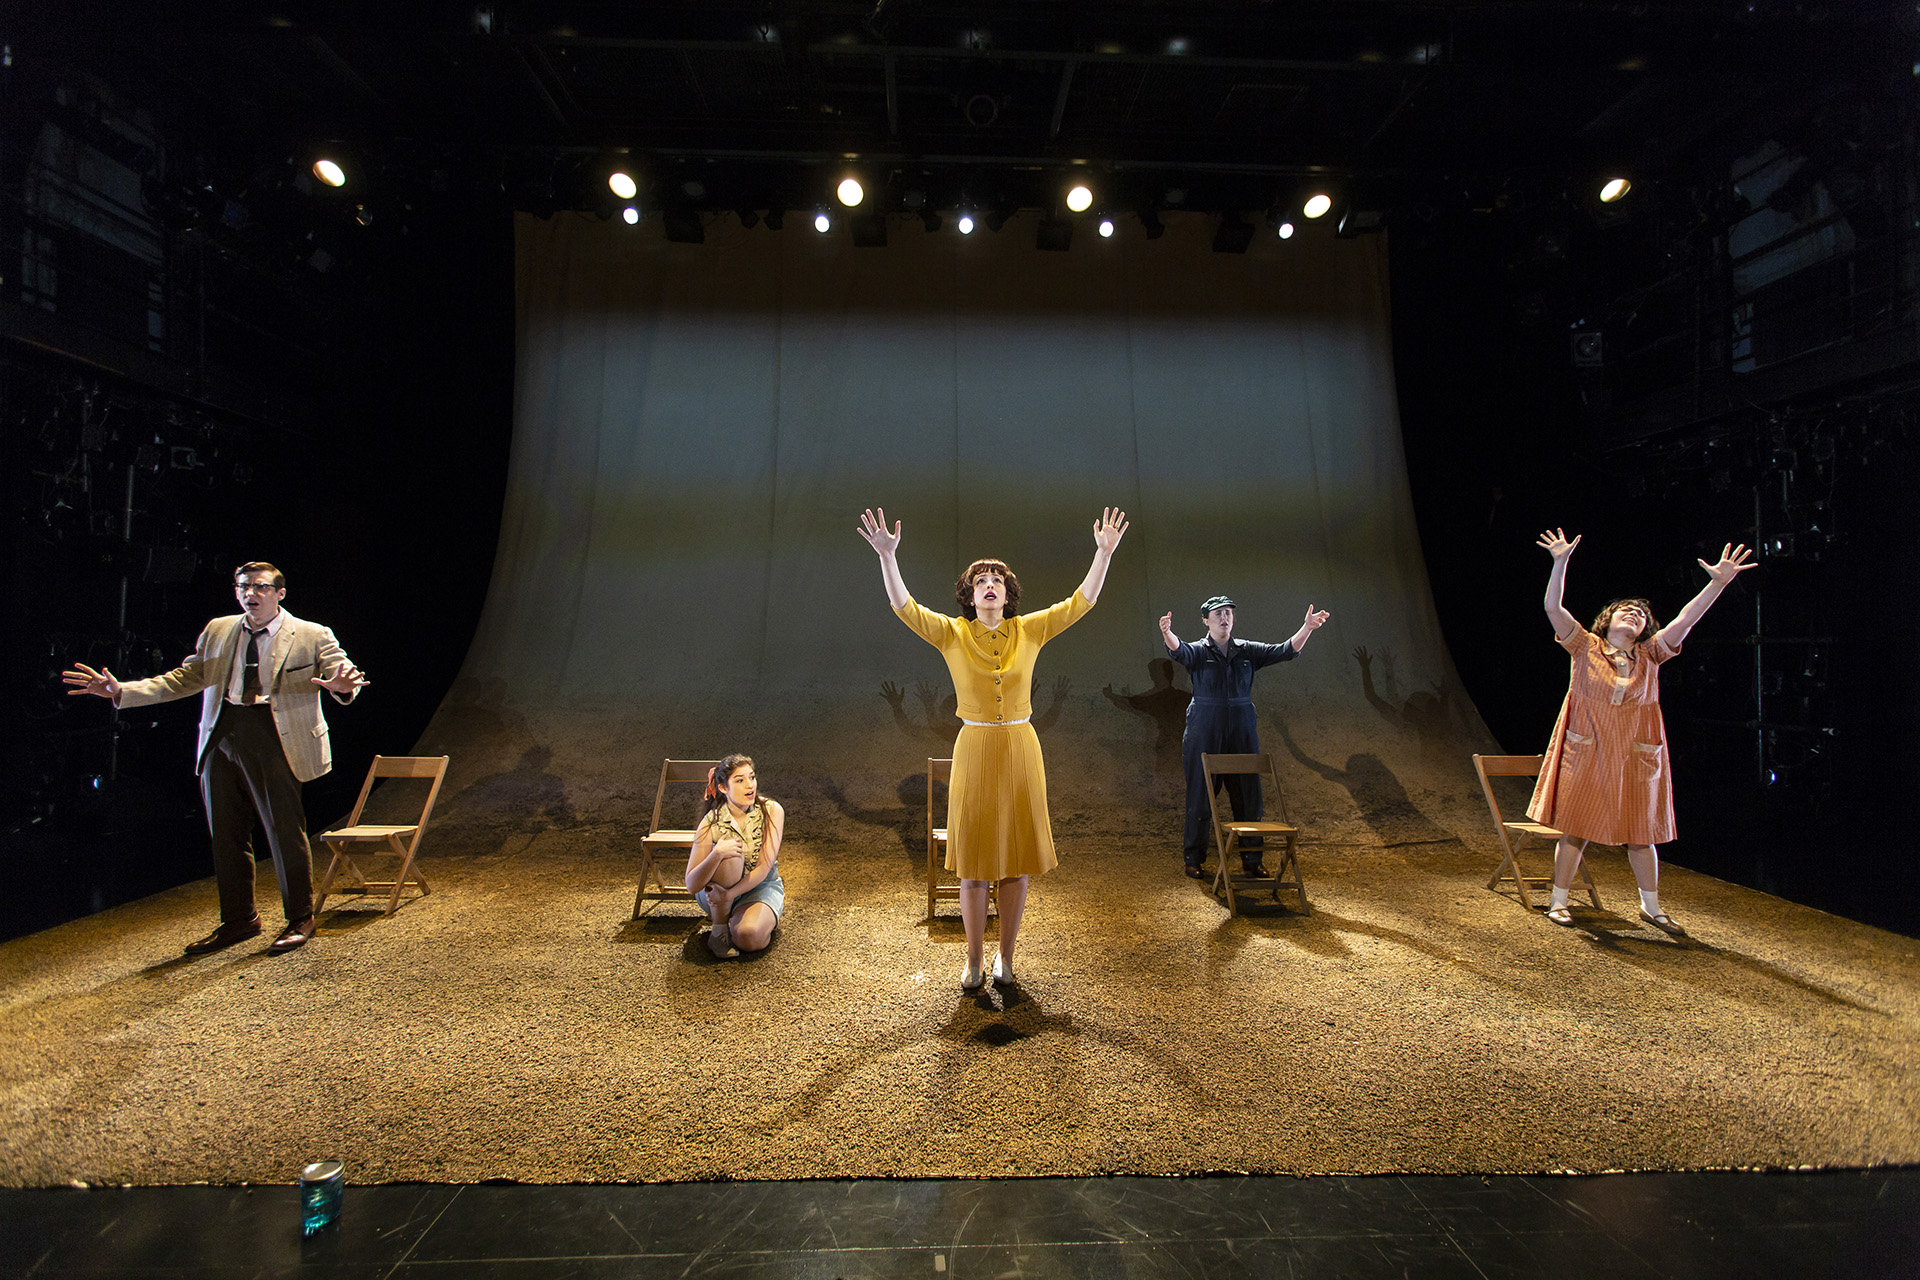 TENT REVIVAL by Majkin Holmquist ('18), directed by Rory Pelsue ('18), scenic design by Gerardo Díaz Sánchez ('19), costume design by Mika H. Eubanks ('19), lighting design by Samuel Kwan Chi Chan ('19), projection design by Brittany Bland ('19), Yale School of Drama, 2018. Photo by T. Charles Erickson.